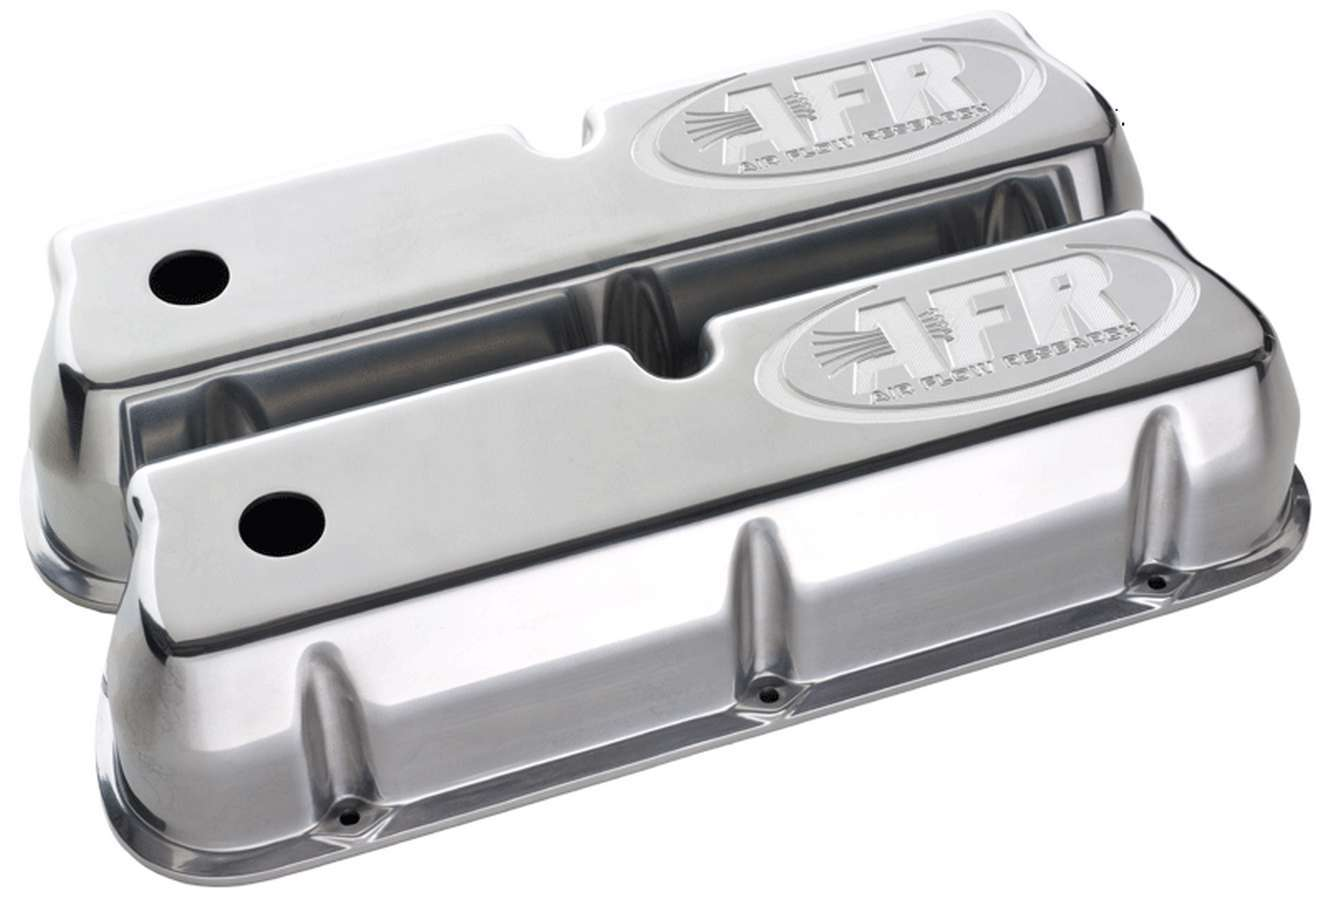 Air Flow Research 6714 Valve Cover, Tall, Breather Holes, AFR Logo, Aluminum, Polished, Small Block Ford, Pair